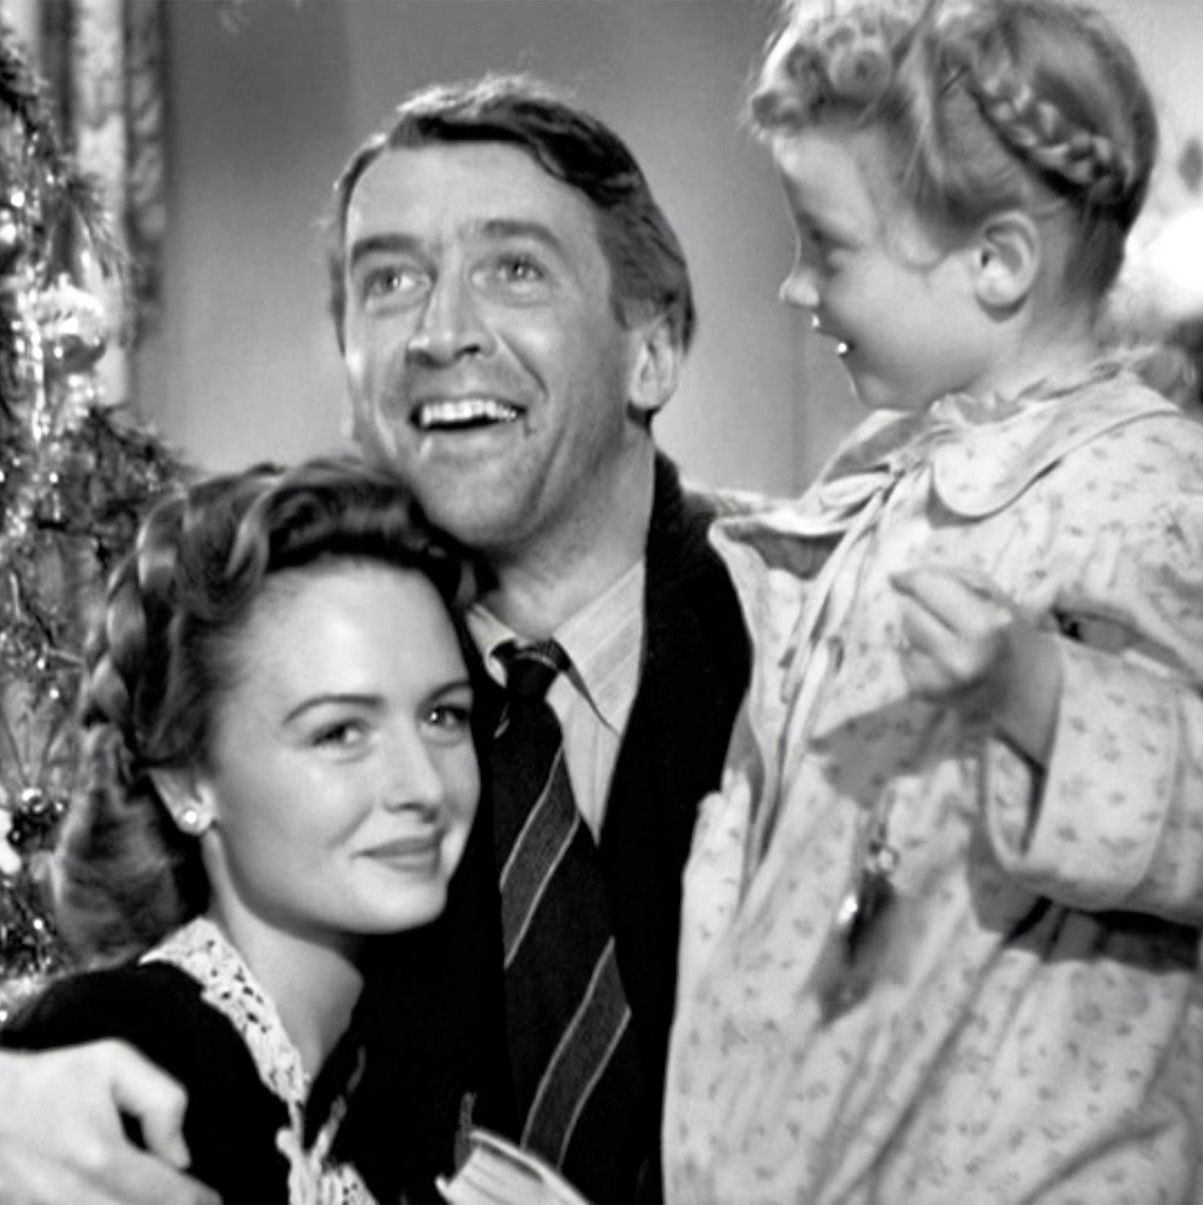 It's a Wonderful Life Few films define Christmas like Frank Capra's 1946 fantasy starring Jimmy Stewart as George Bailey, who, on the verge of committing suicide, is visited by an angel who shows him the true importance of his life. Make this one a year-round tradition.